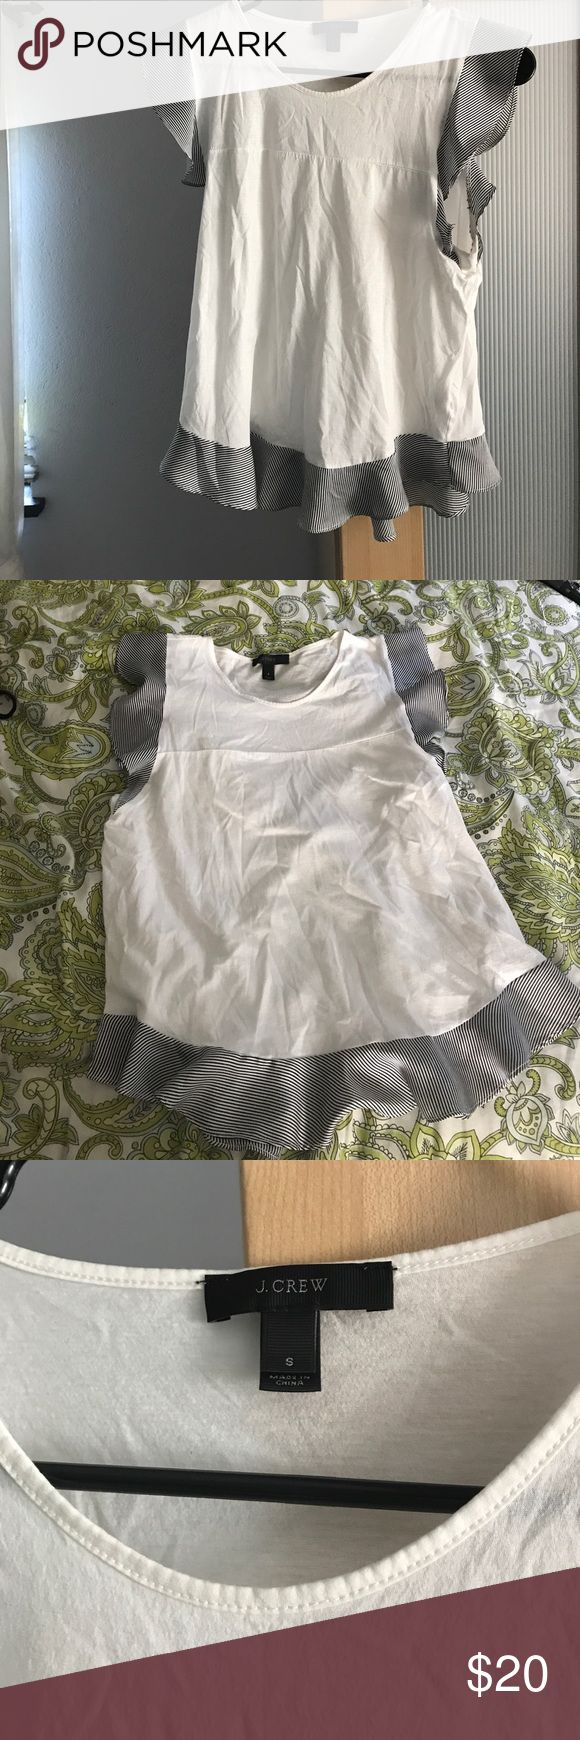 J crew white blouse with stripe ruffle detail Gently worn j crew top with blue and white stripe detailing on sleeves and bottom. Size small. 100% cotton J. Crew Tops Blouses